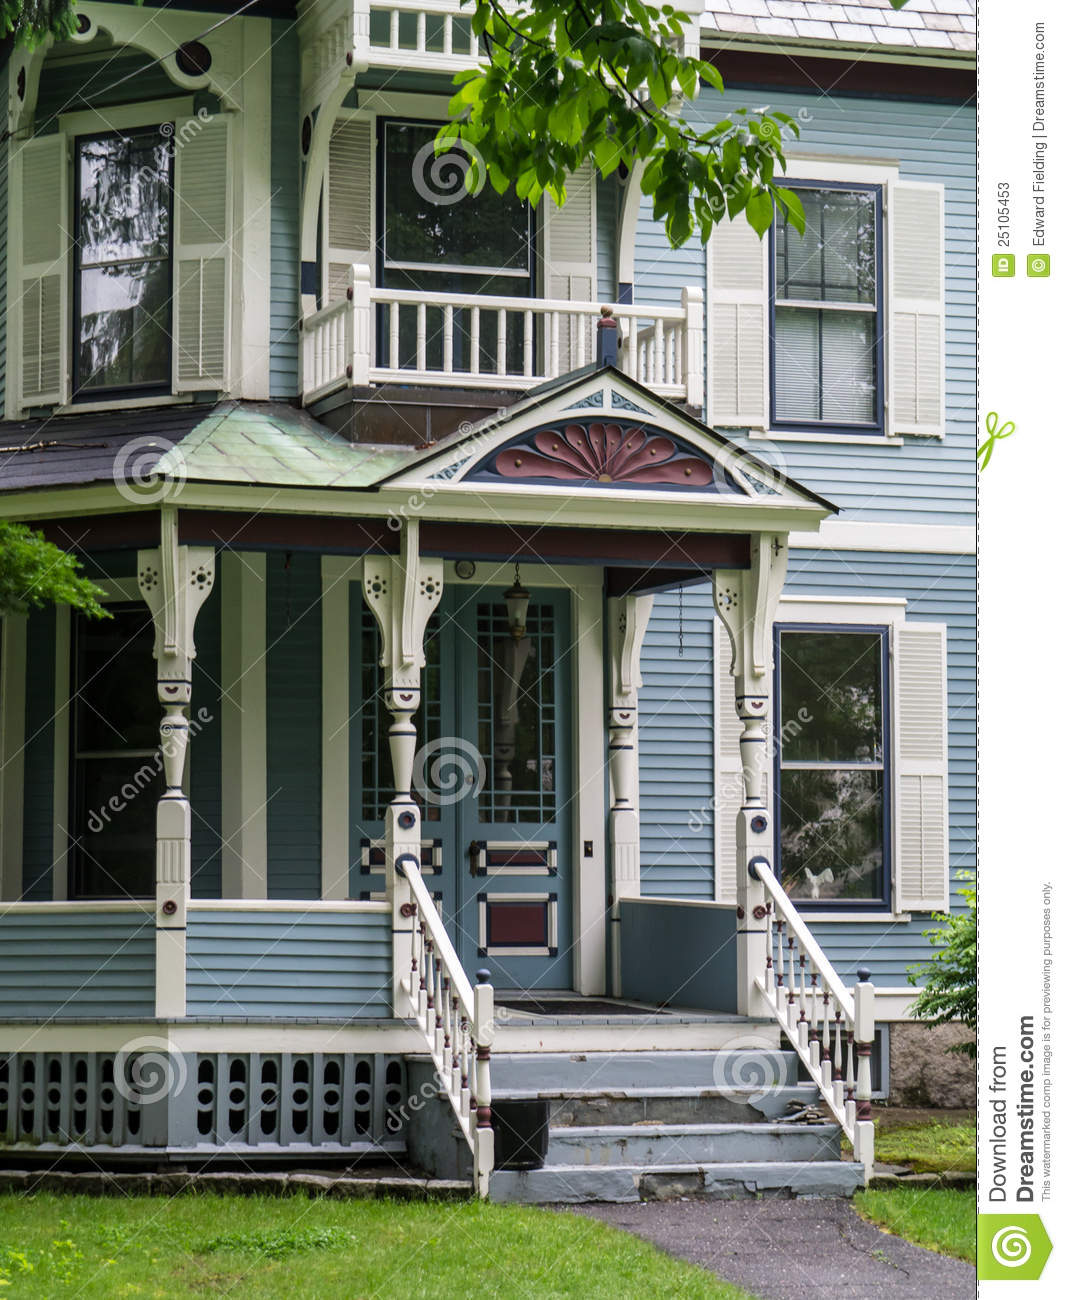 painted-lady-victorian-home-25105453 Painted Lady Victorian House Plans on barn house plans, painted lady victoria, painted ladies, victorian mansion floor plans, late 19th century house plans, small victorian floor plans, storybook house plans, painted victorian house beautiful, small row house plans, painted lady homes, authentic antebellum house plans, painted victorian houses san francisco, painted lady house floor plan, early-1900s house plans, fairy tale cottage house plans, painted lady window, painted lady house colors, old shotgun house plans, 1890 house plans,